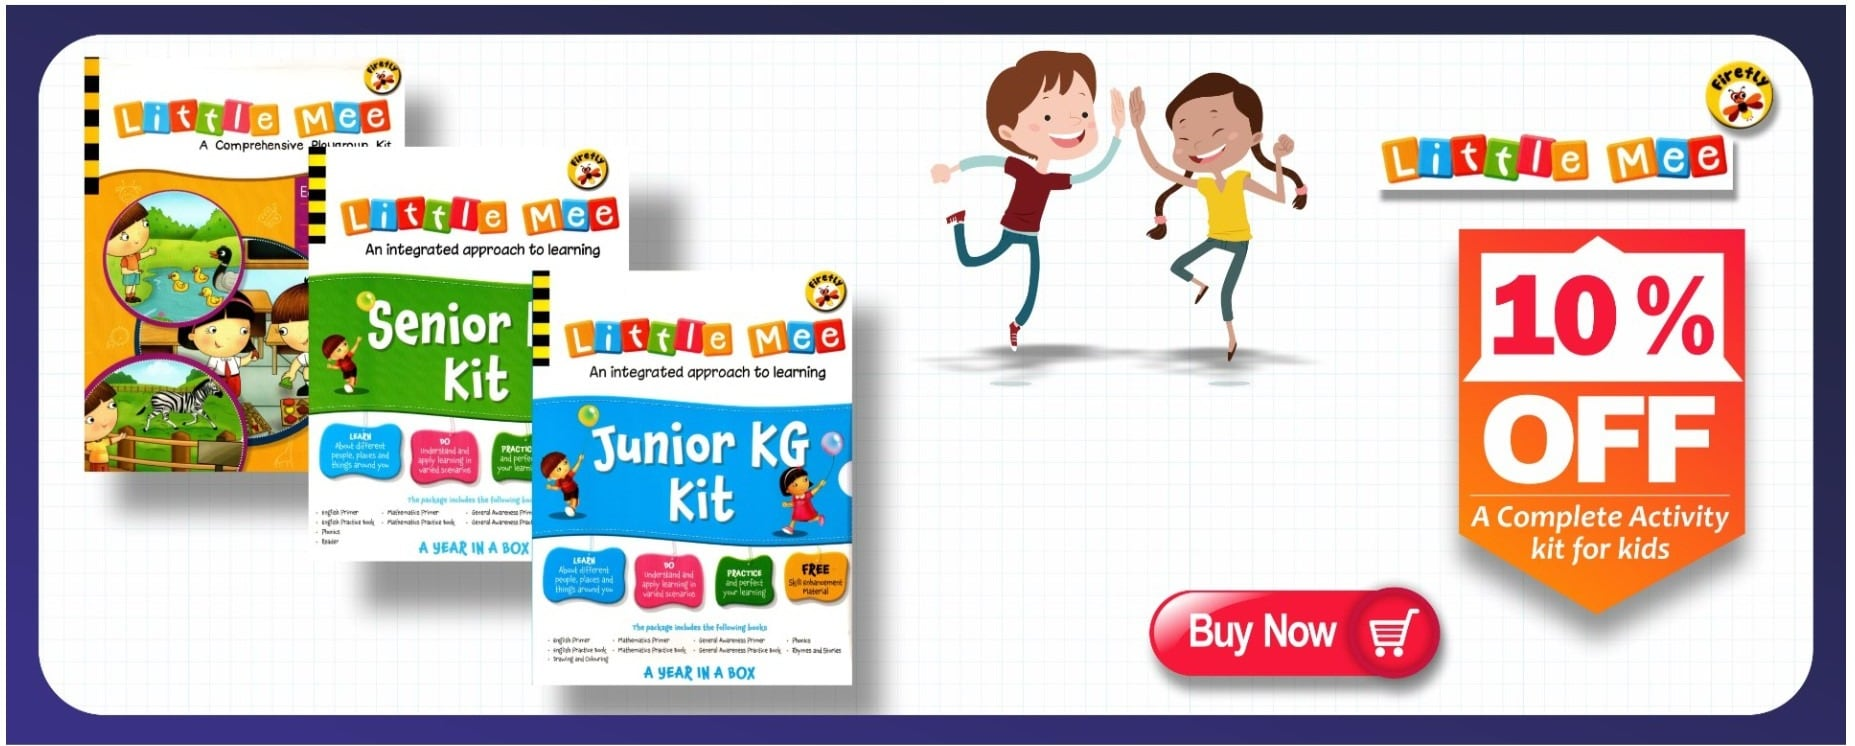 My Child Can - Book Store in Lakshmi Mills, Coimbatore